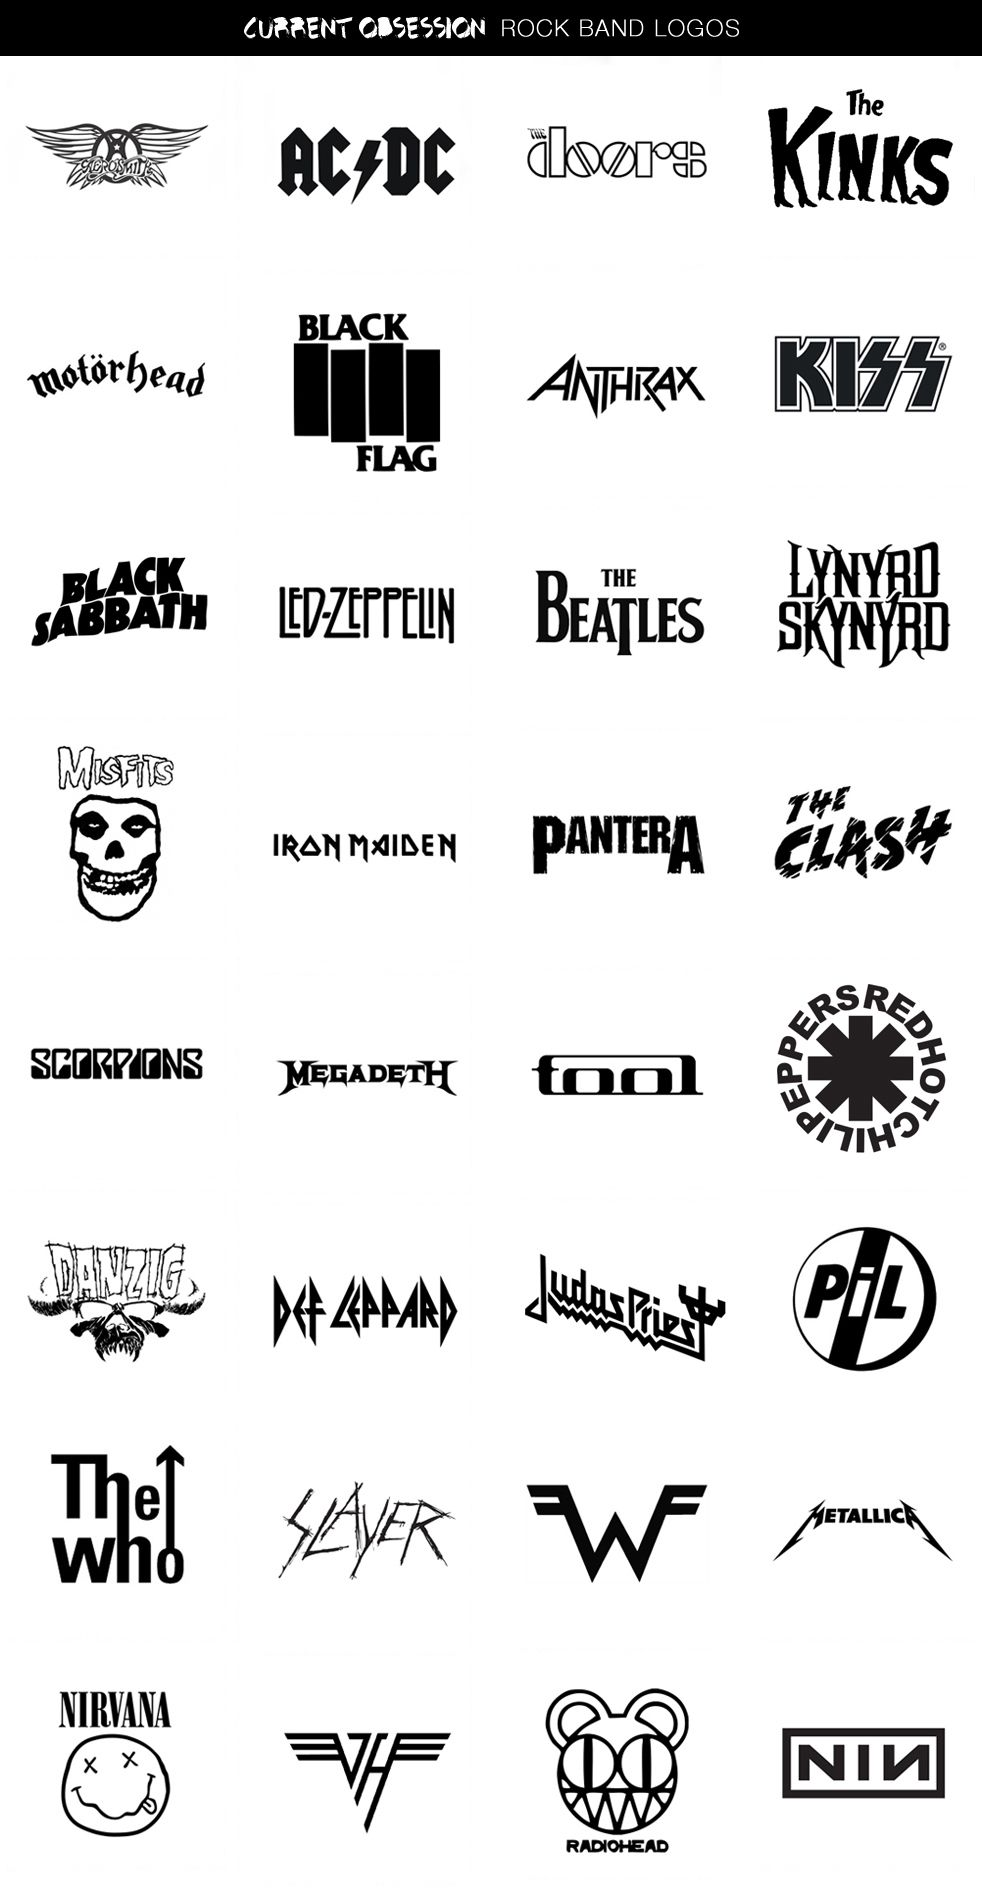 The animals band logo scorpions band logo - Current Obsession Rock Band Logos